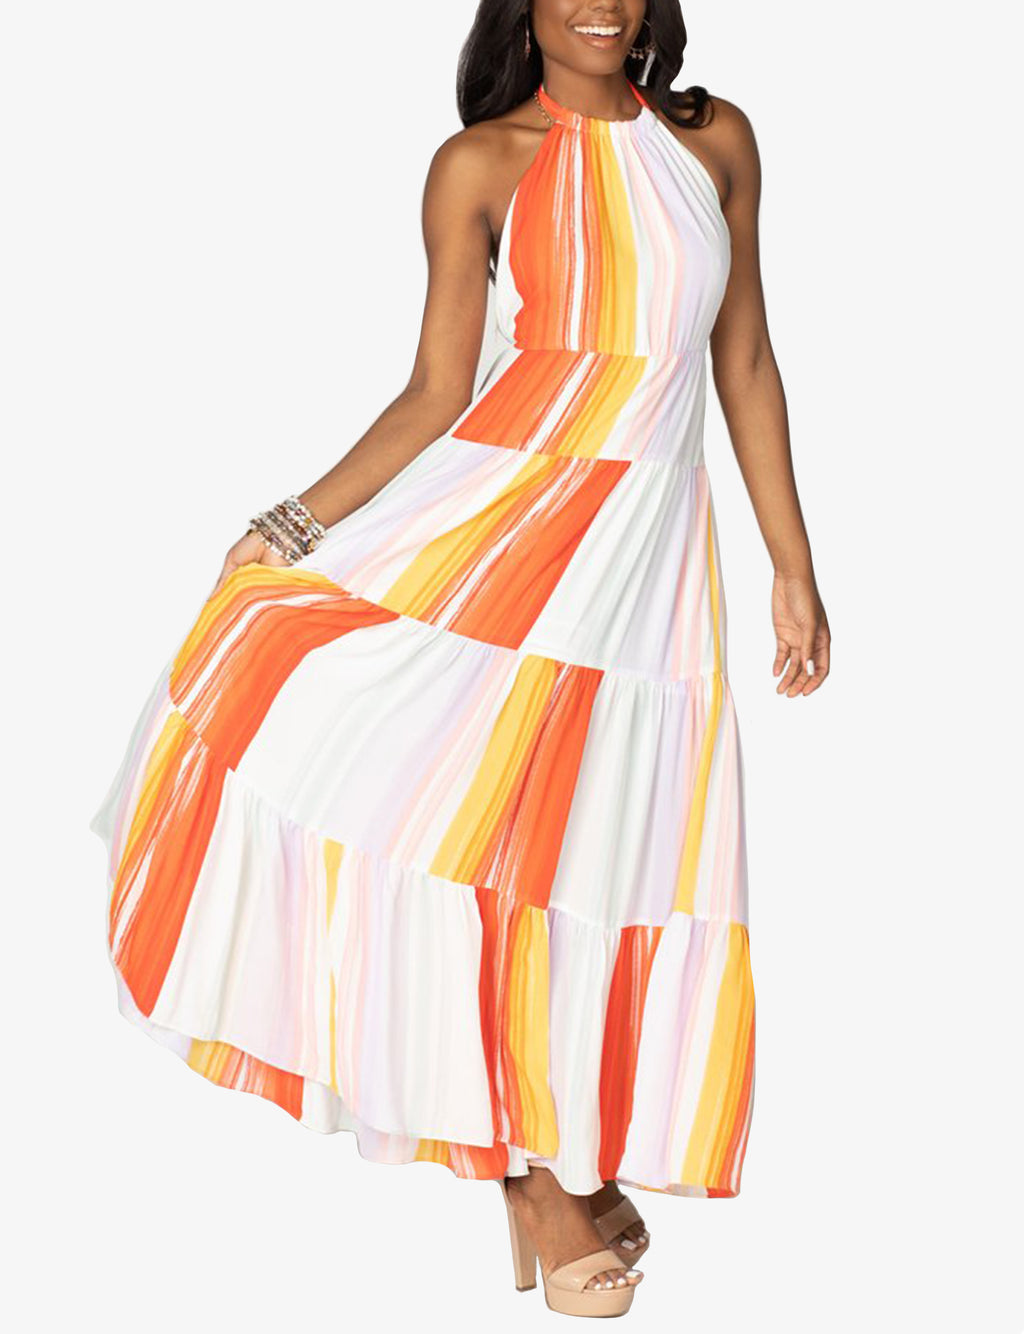 Buddy Love Blake Tiered Maxi in Sorbet